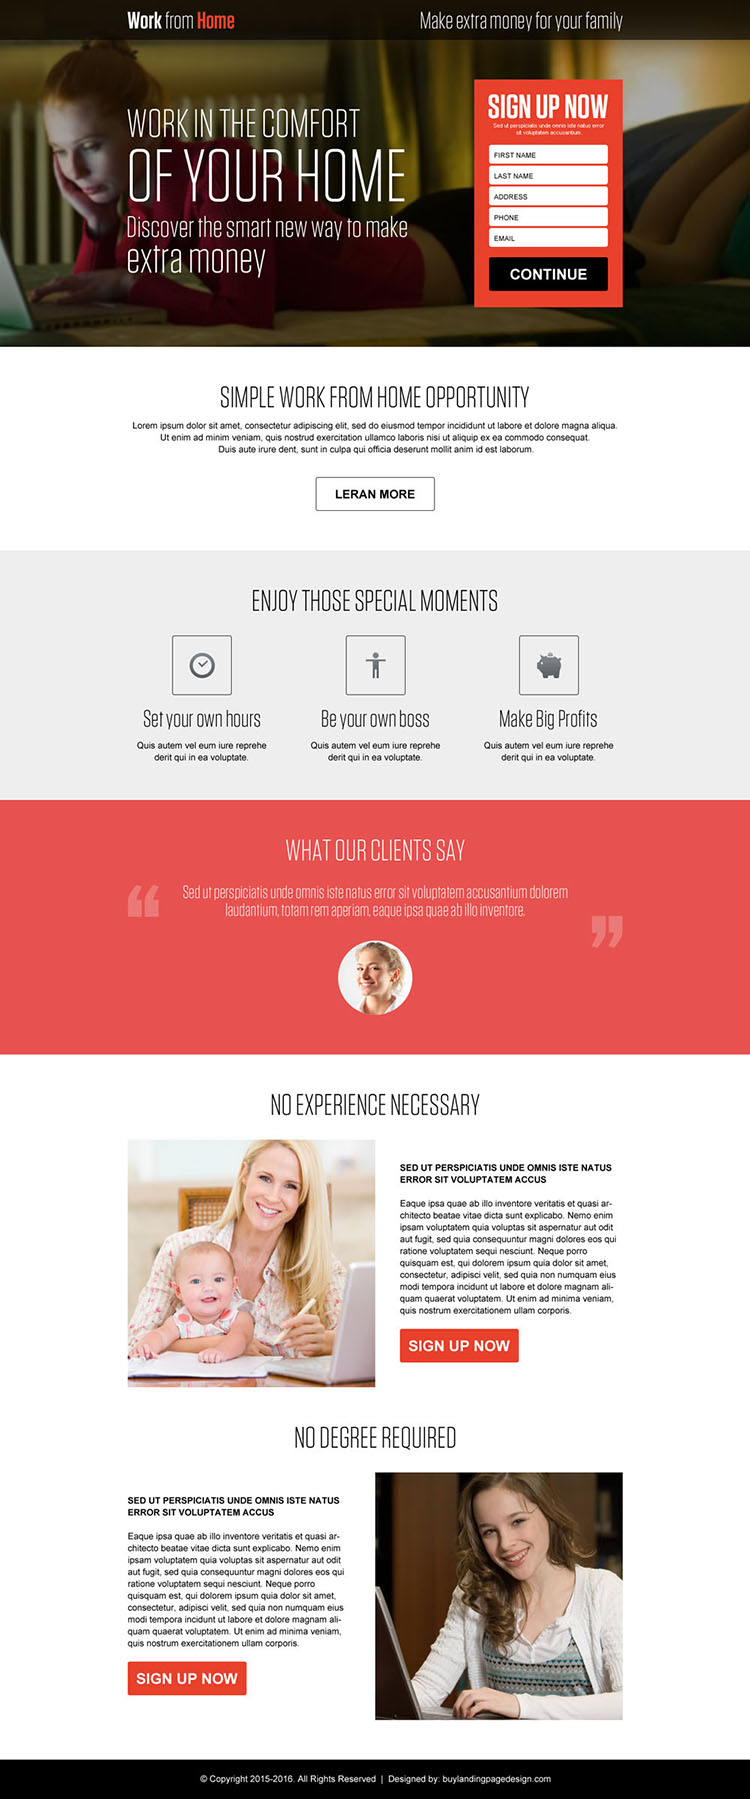 modern work from home opportunity landing page design